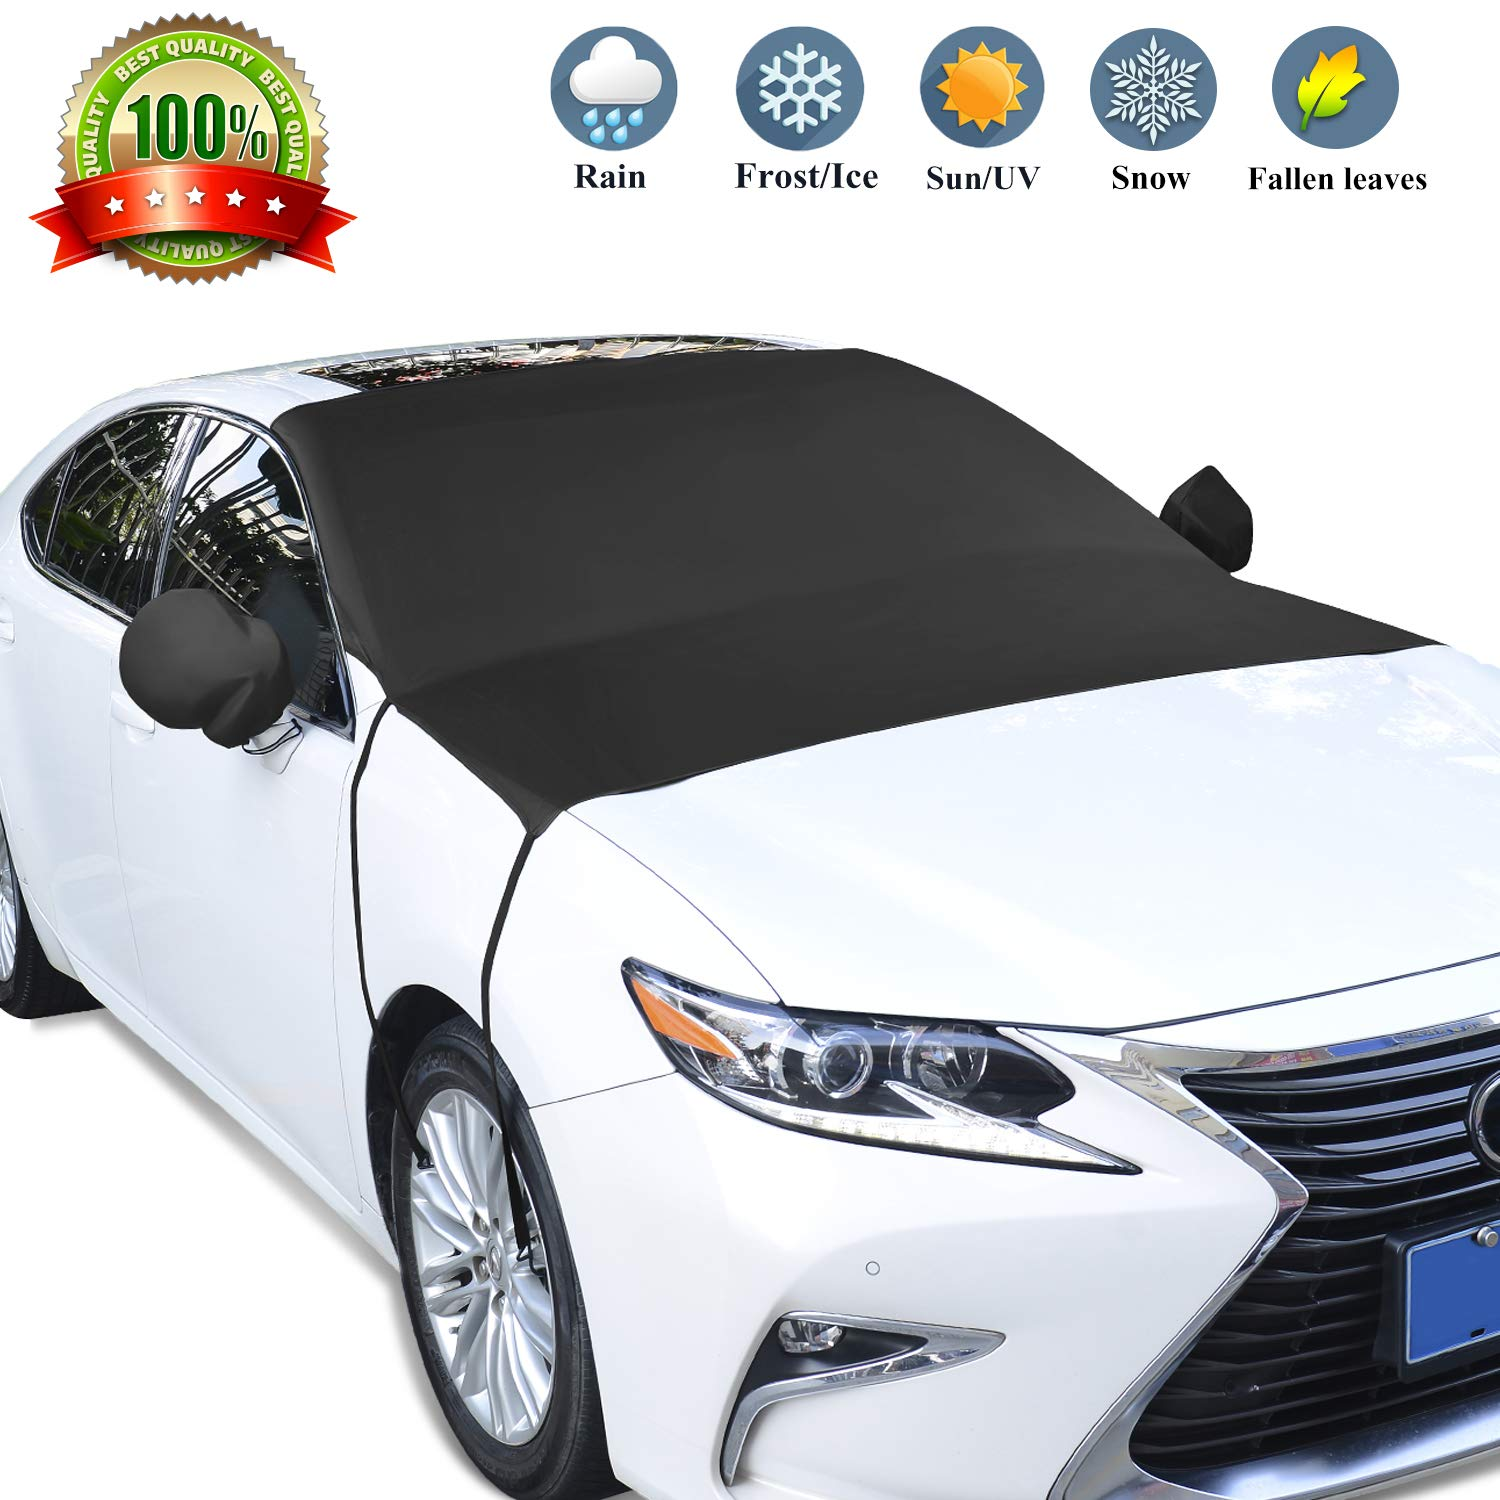 GikPal Car Windshield Snow Cover, SUVs Windscreen Sun Shade Protector UV Rays Heat Dust Cover Frost Ice Cover with Hooks and Buckle Juzheng